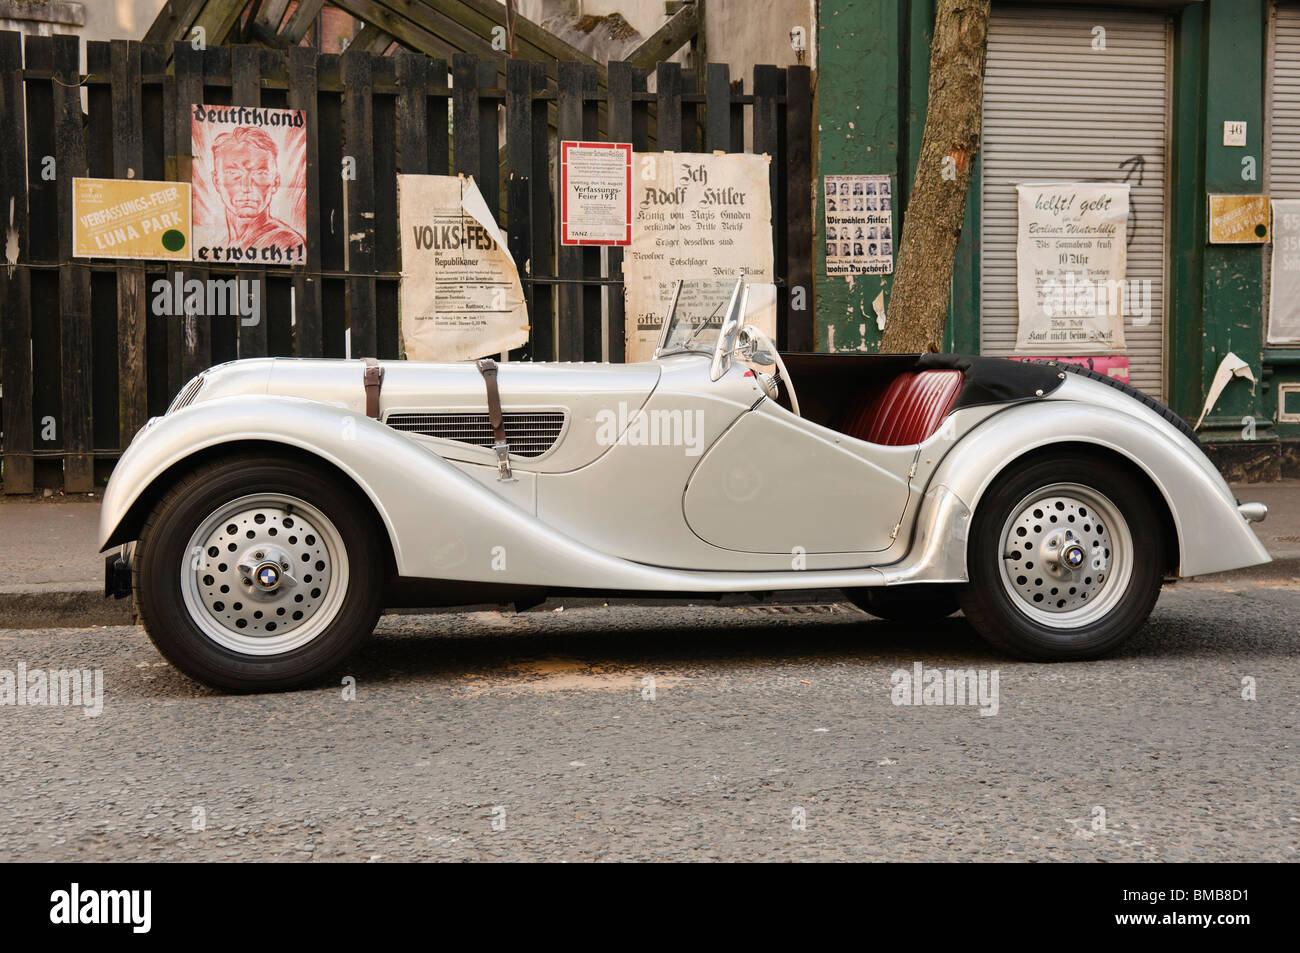 BMW 328 roadster from the latter half of the 1930s on a film set recreating Berlin in the mid 1930s with Nazi propaganda - Stock Image